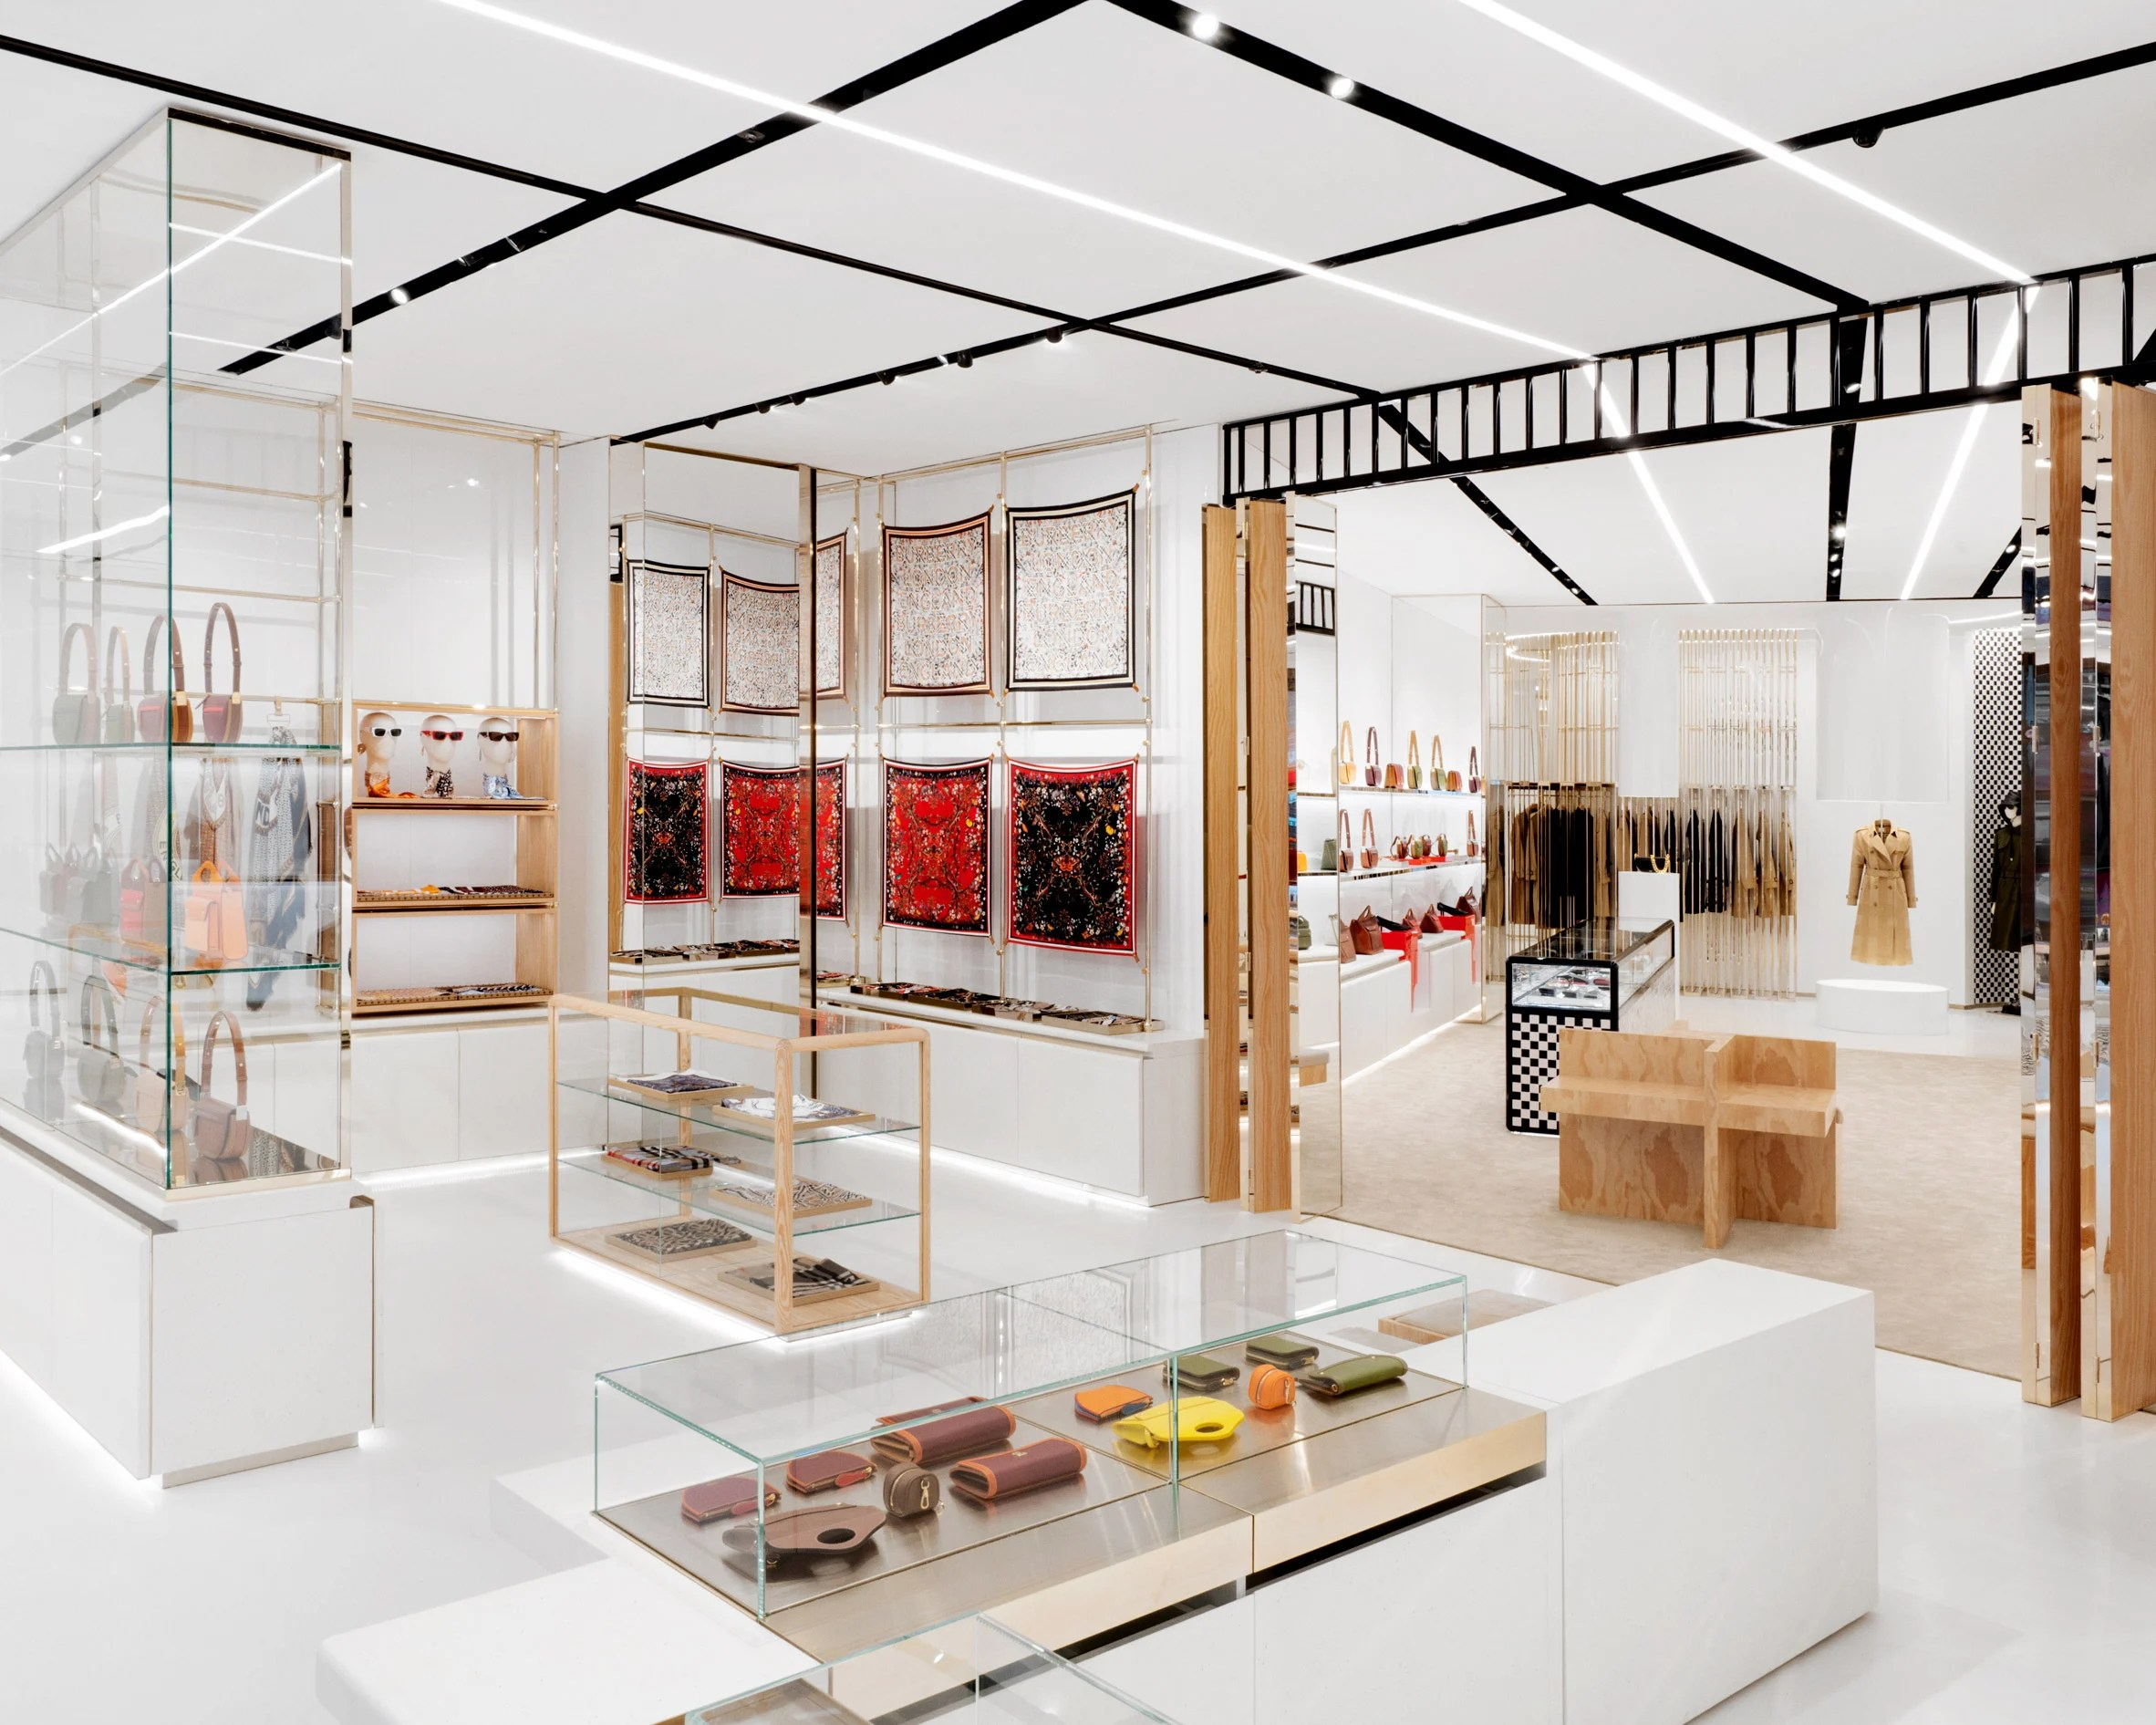 No.1 Sloane Street store by Vincenzo De Cotiis with accessories displayed in champagne-coloured steel units